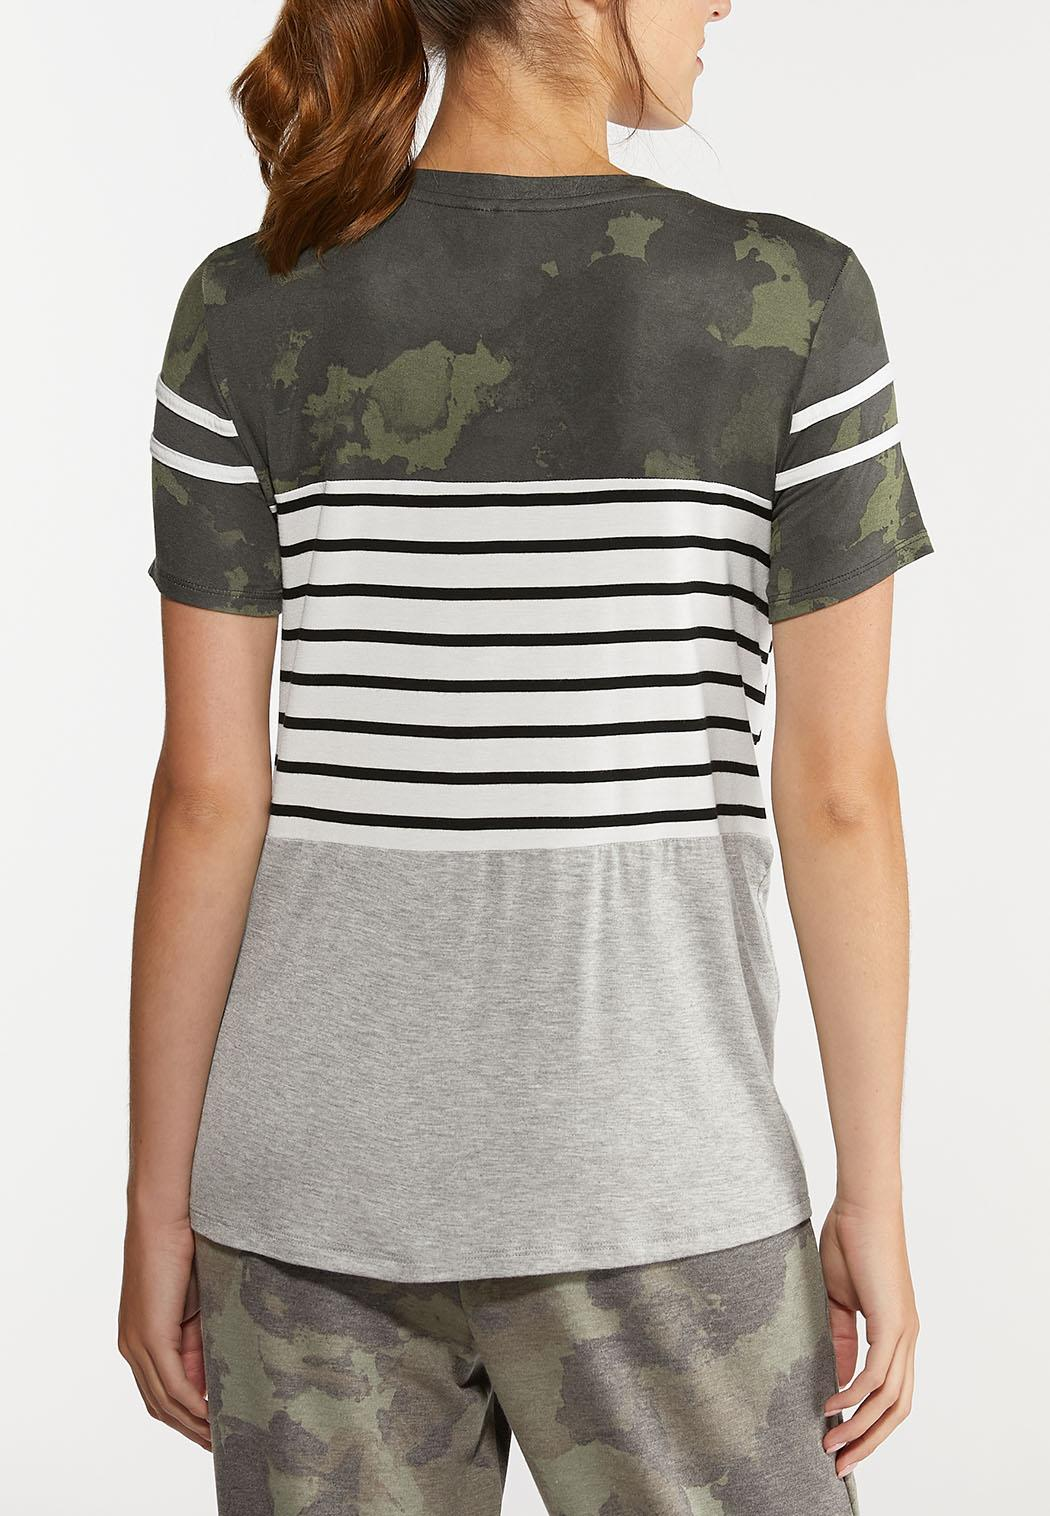 Camo Stripe Knotted Tee (Item #44299849)